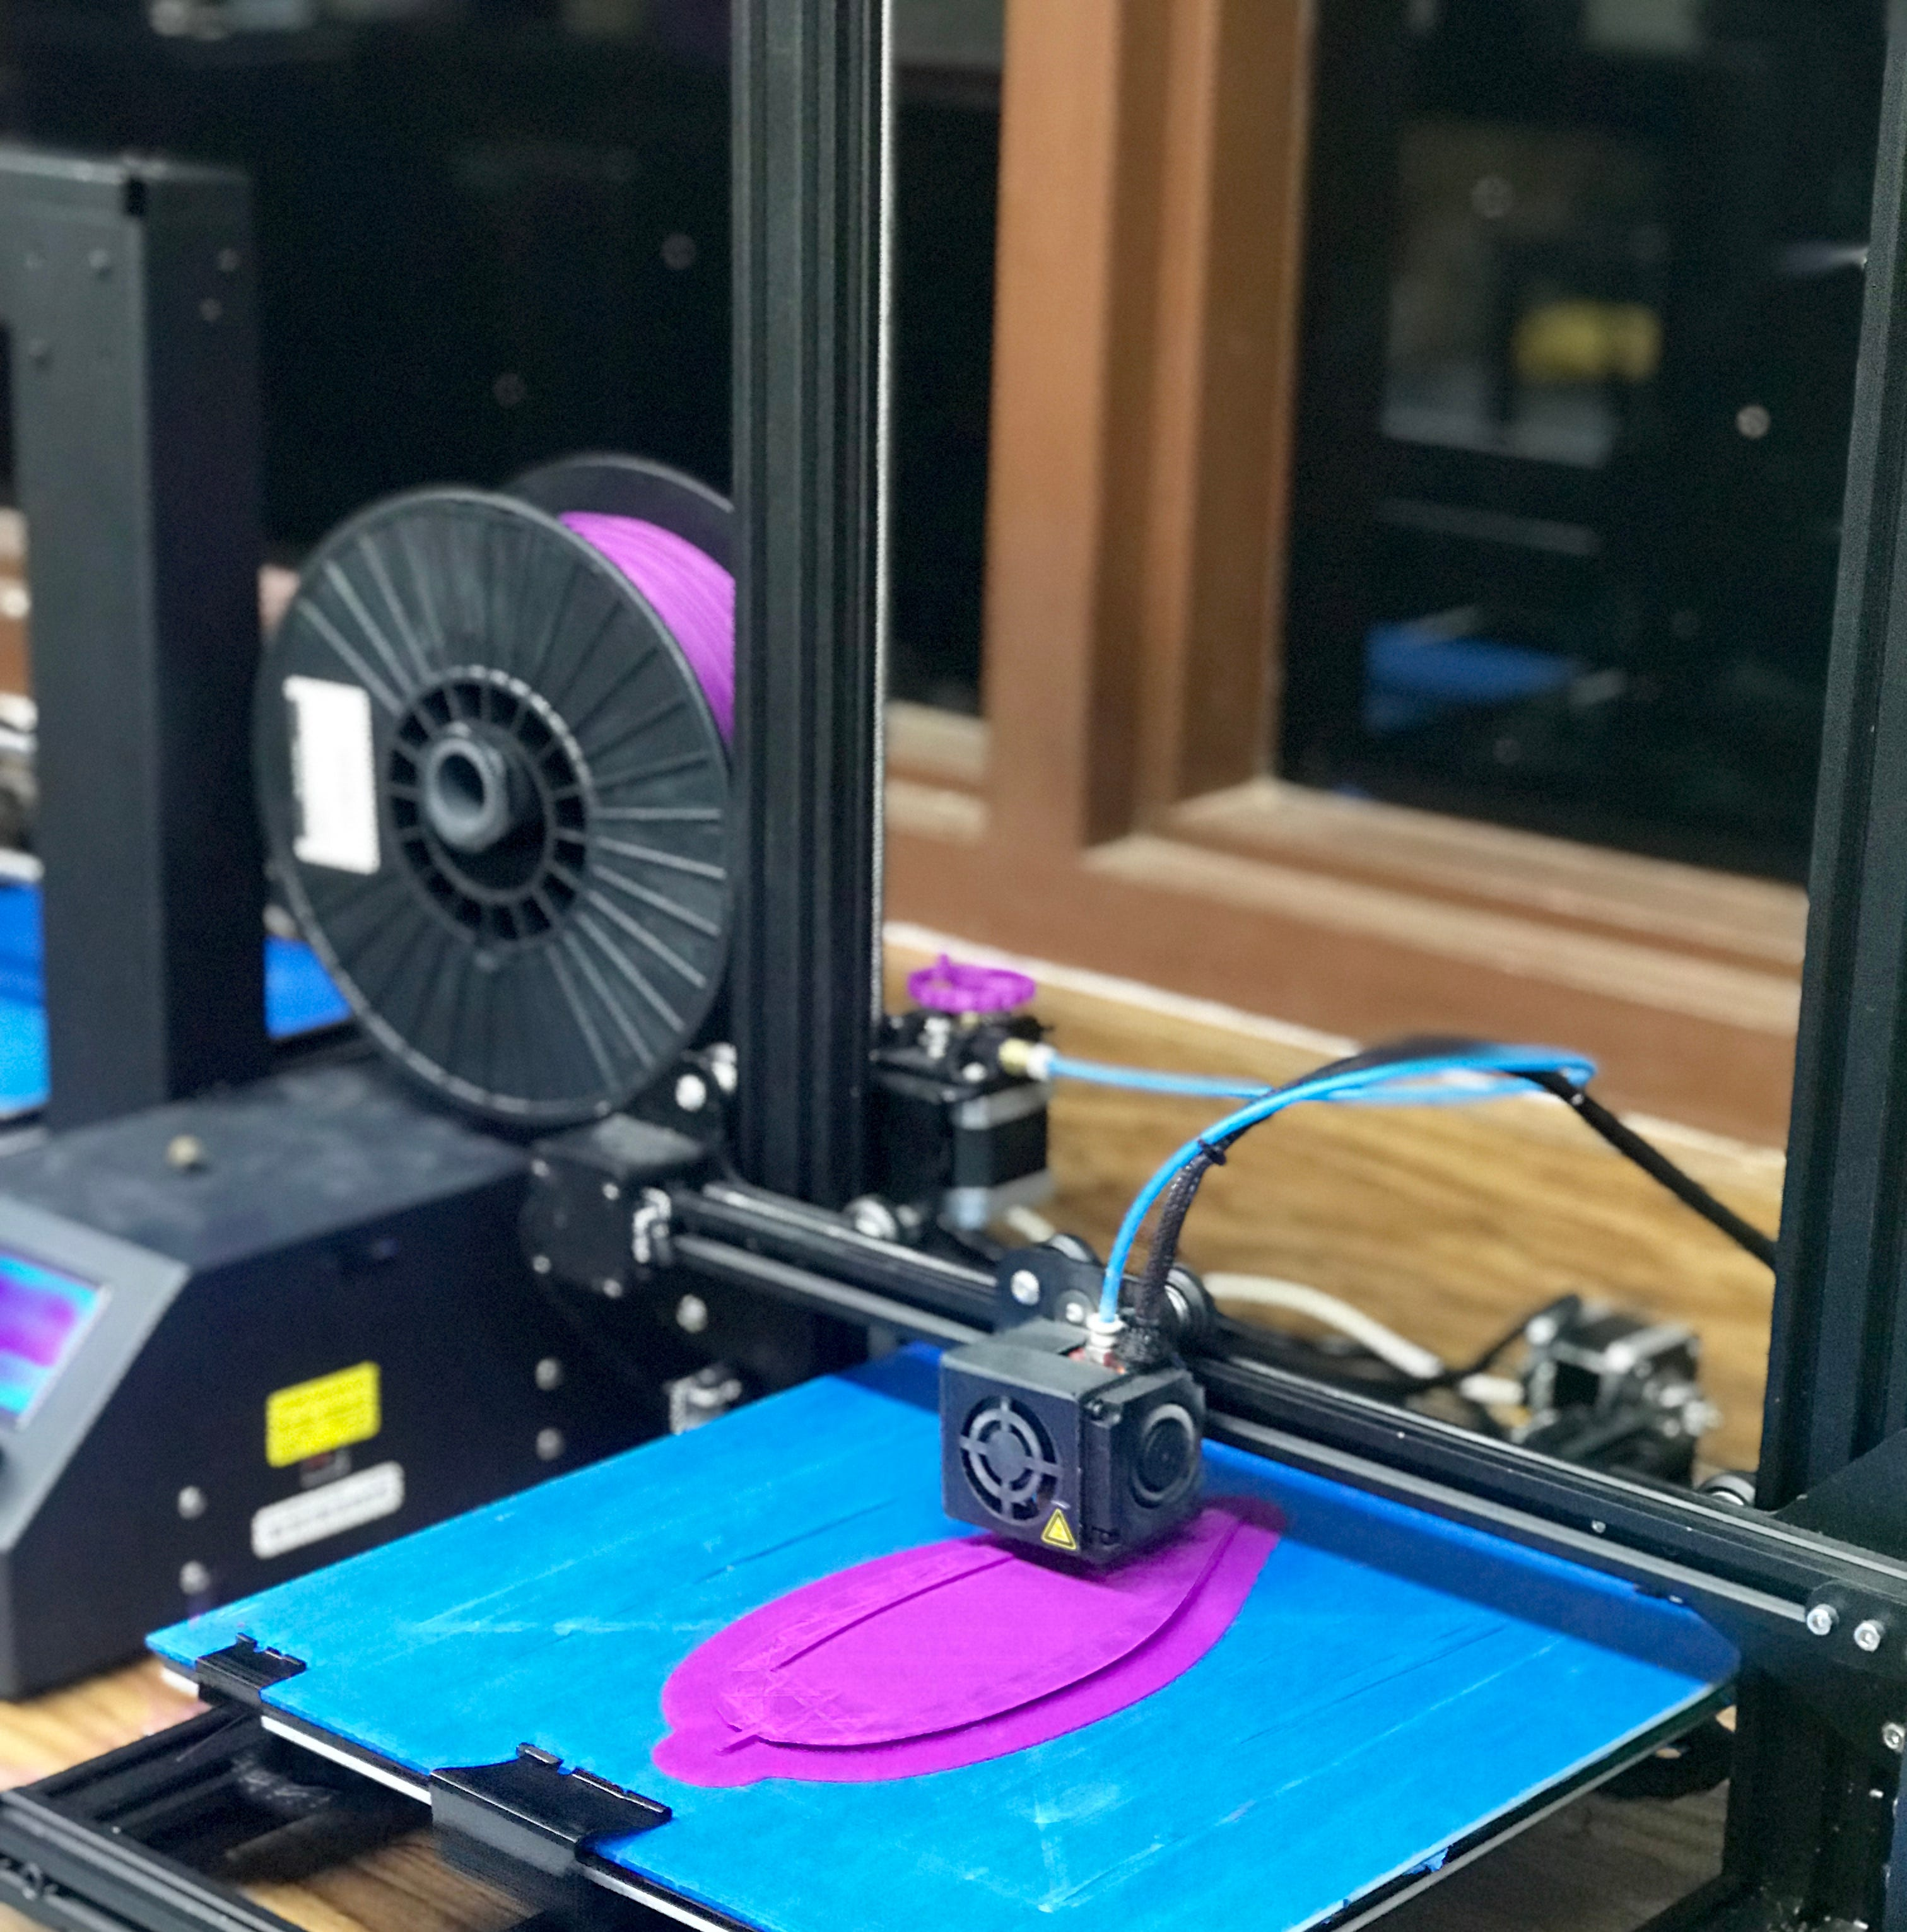 Students win awards, demonstrate ingenuity using 3D printers to create unique game, clamp